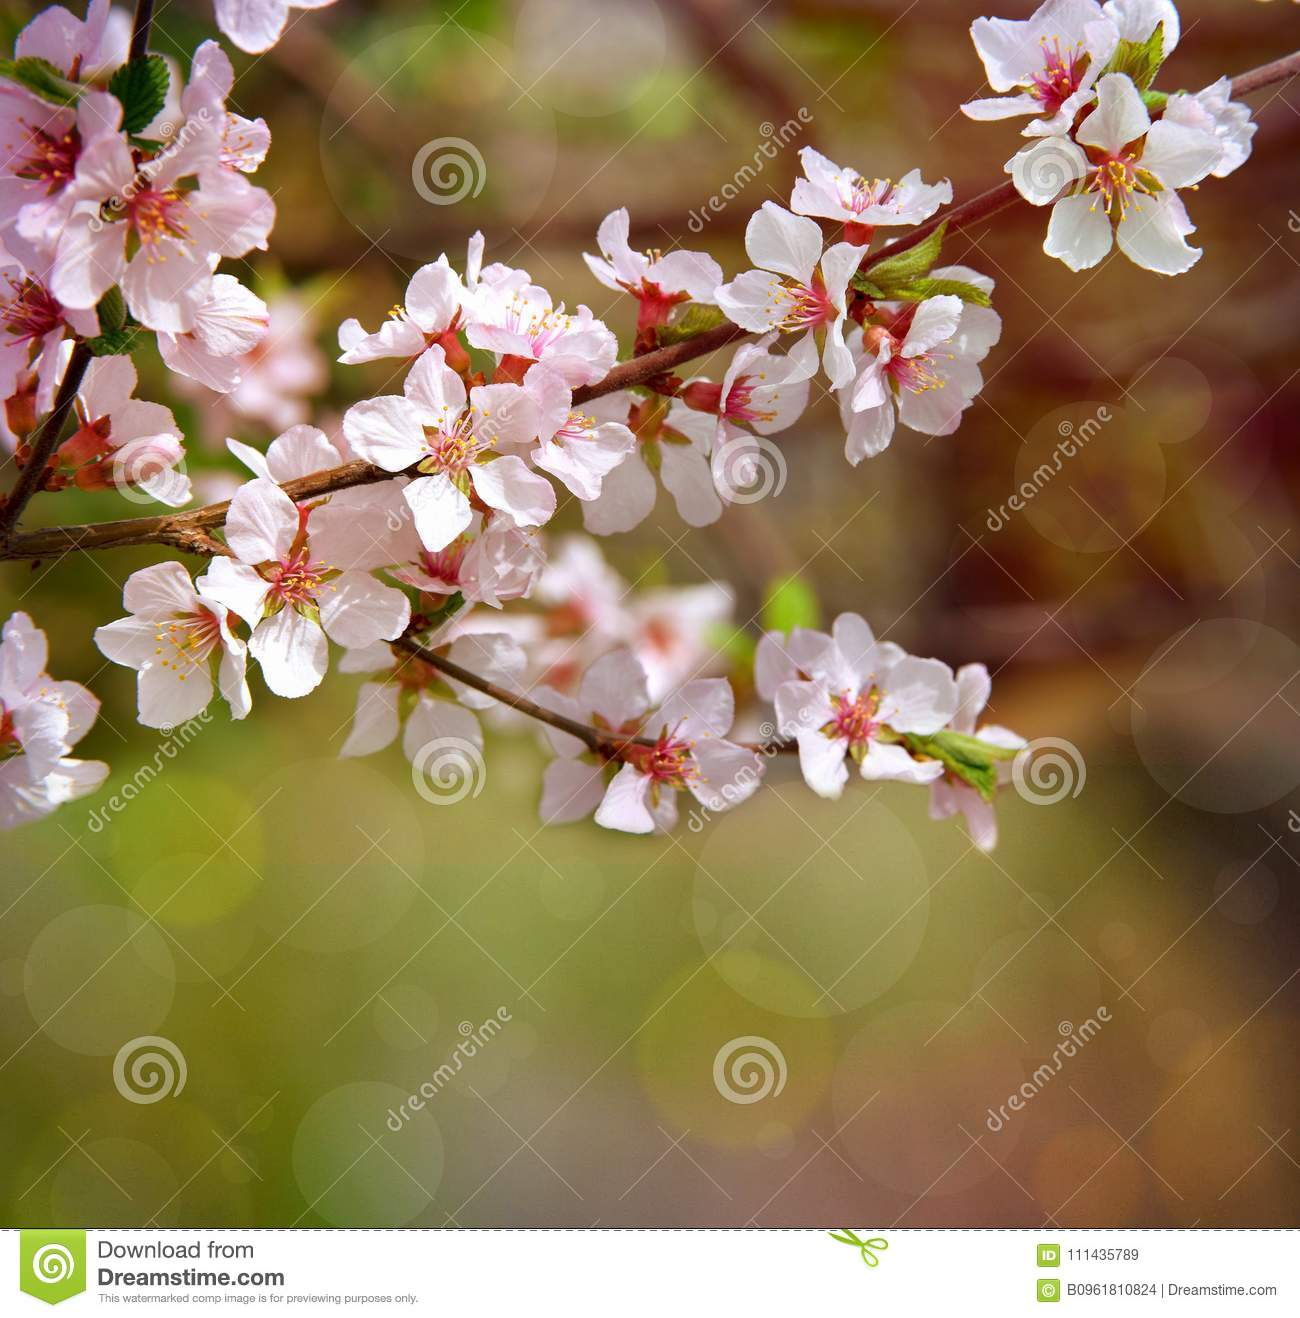 The cherry trees are blooming white flowers white cherry blossoms royalty free stock photo mightylinksfo Gallery